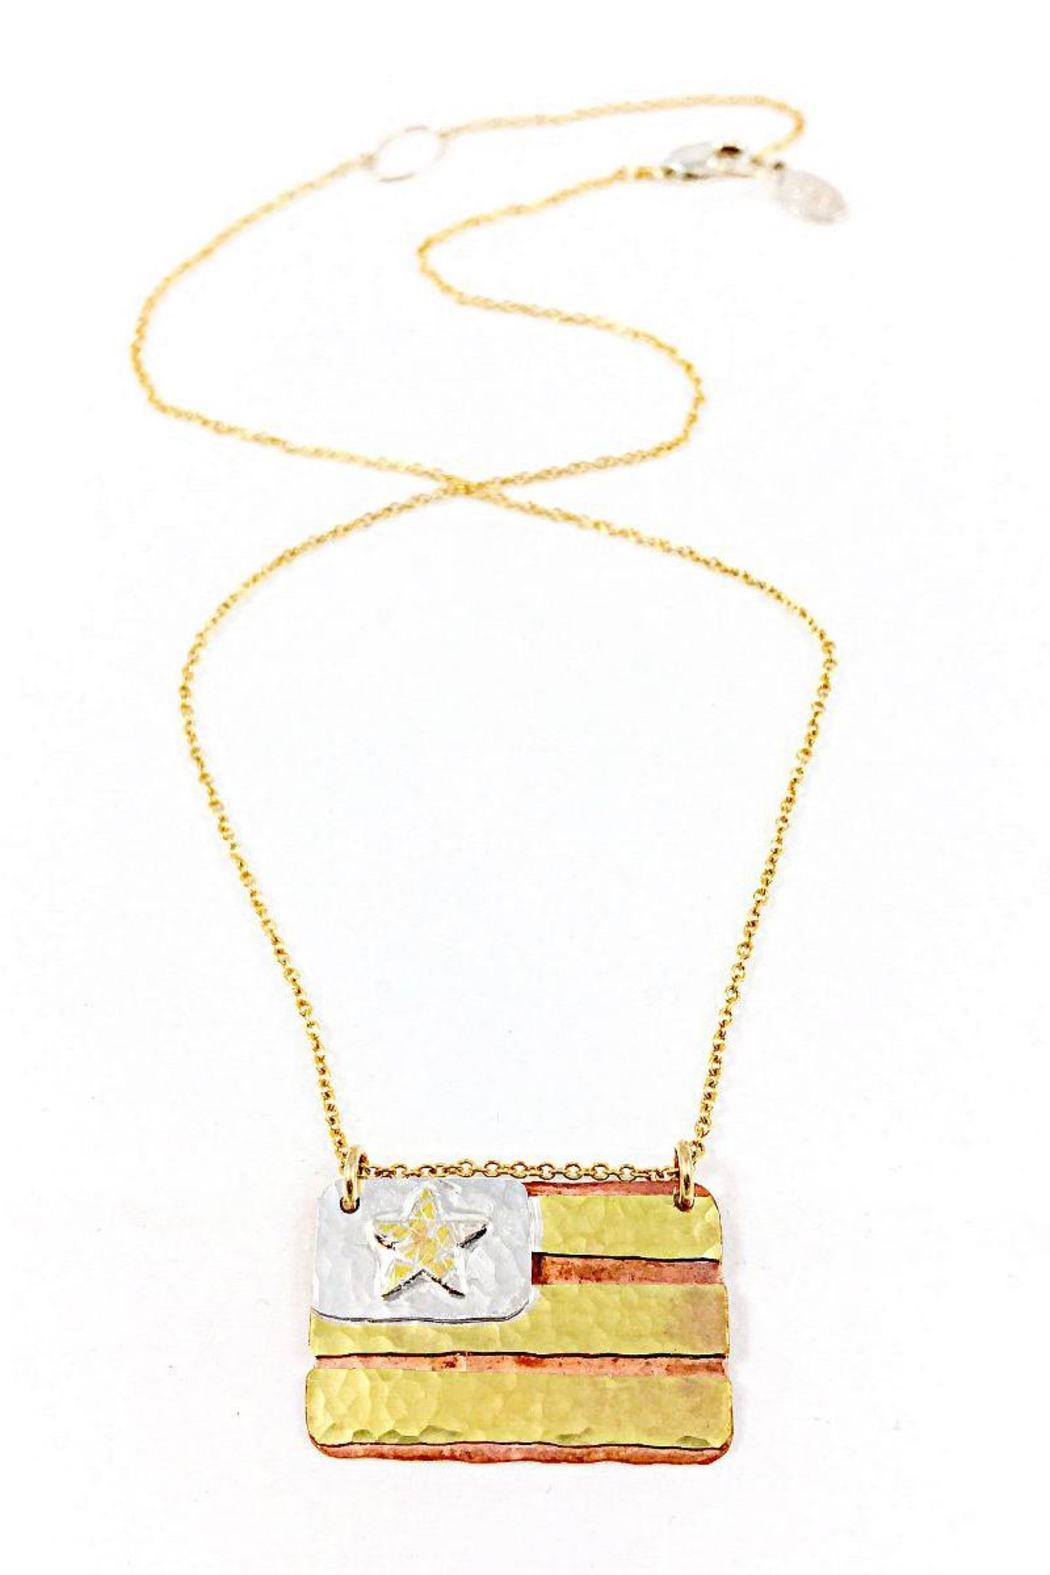 necklace pendant american flag s horse gold us claire